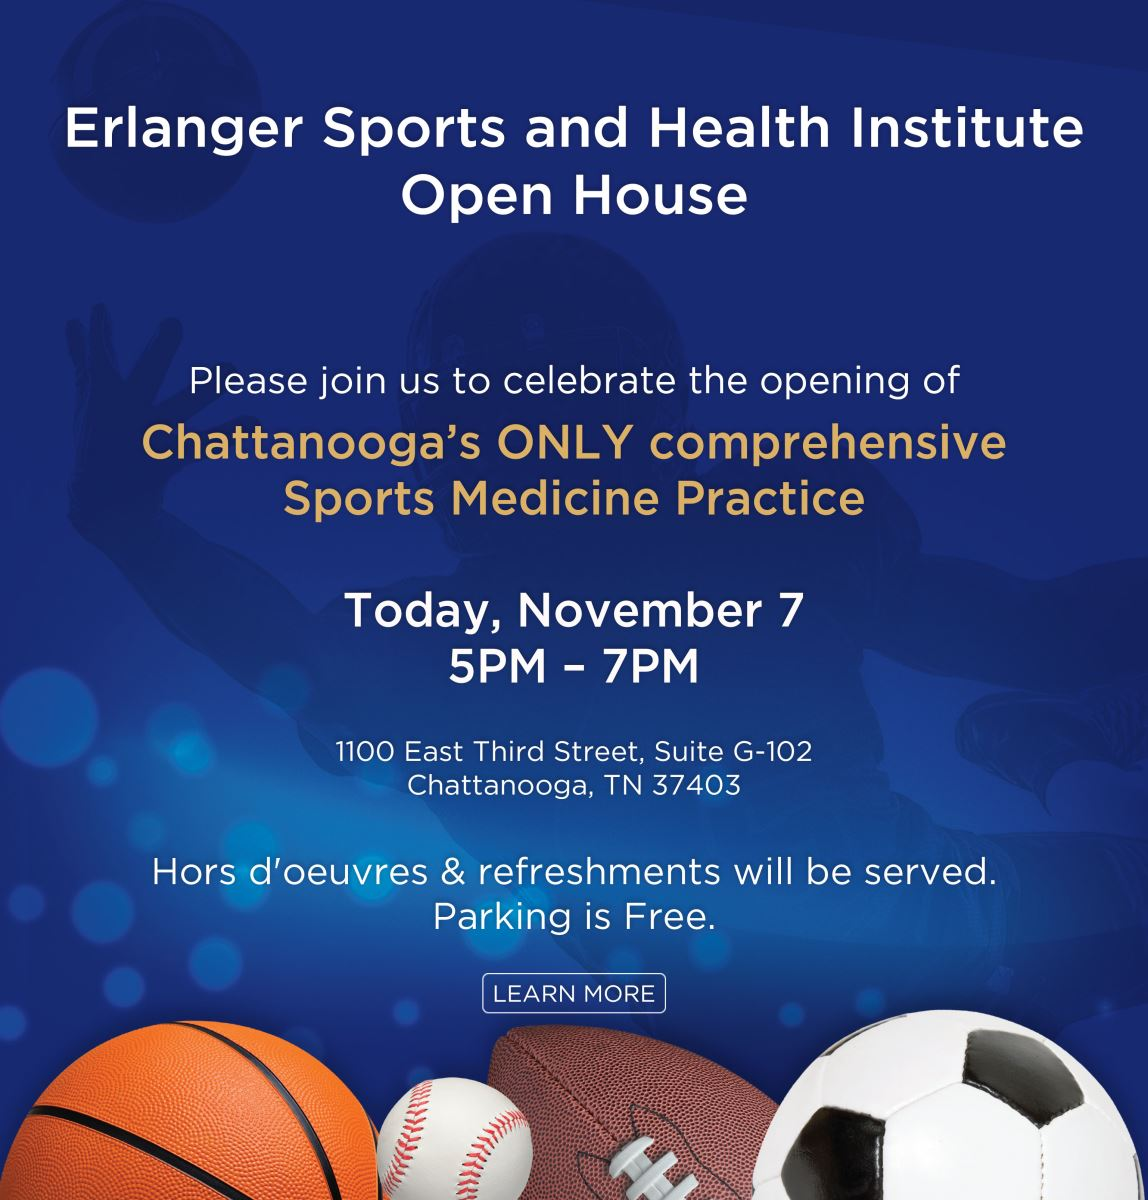 Erlanger Sports and Health Institute Open House